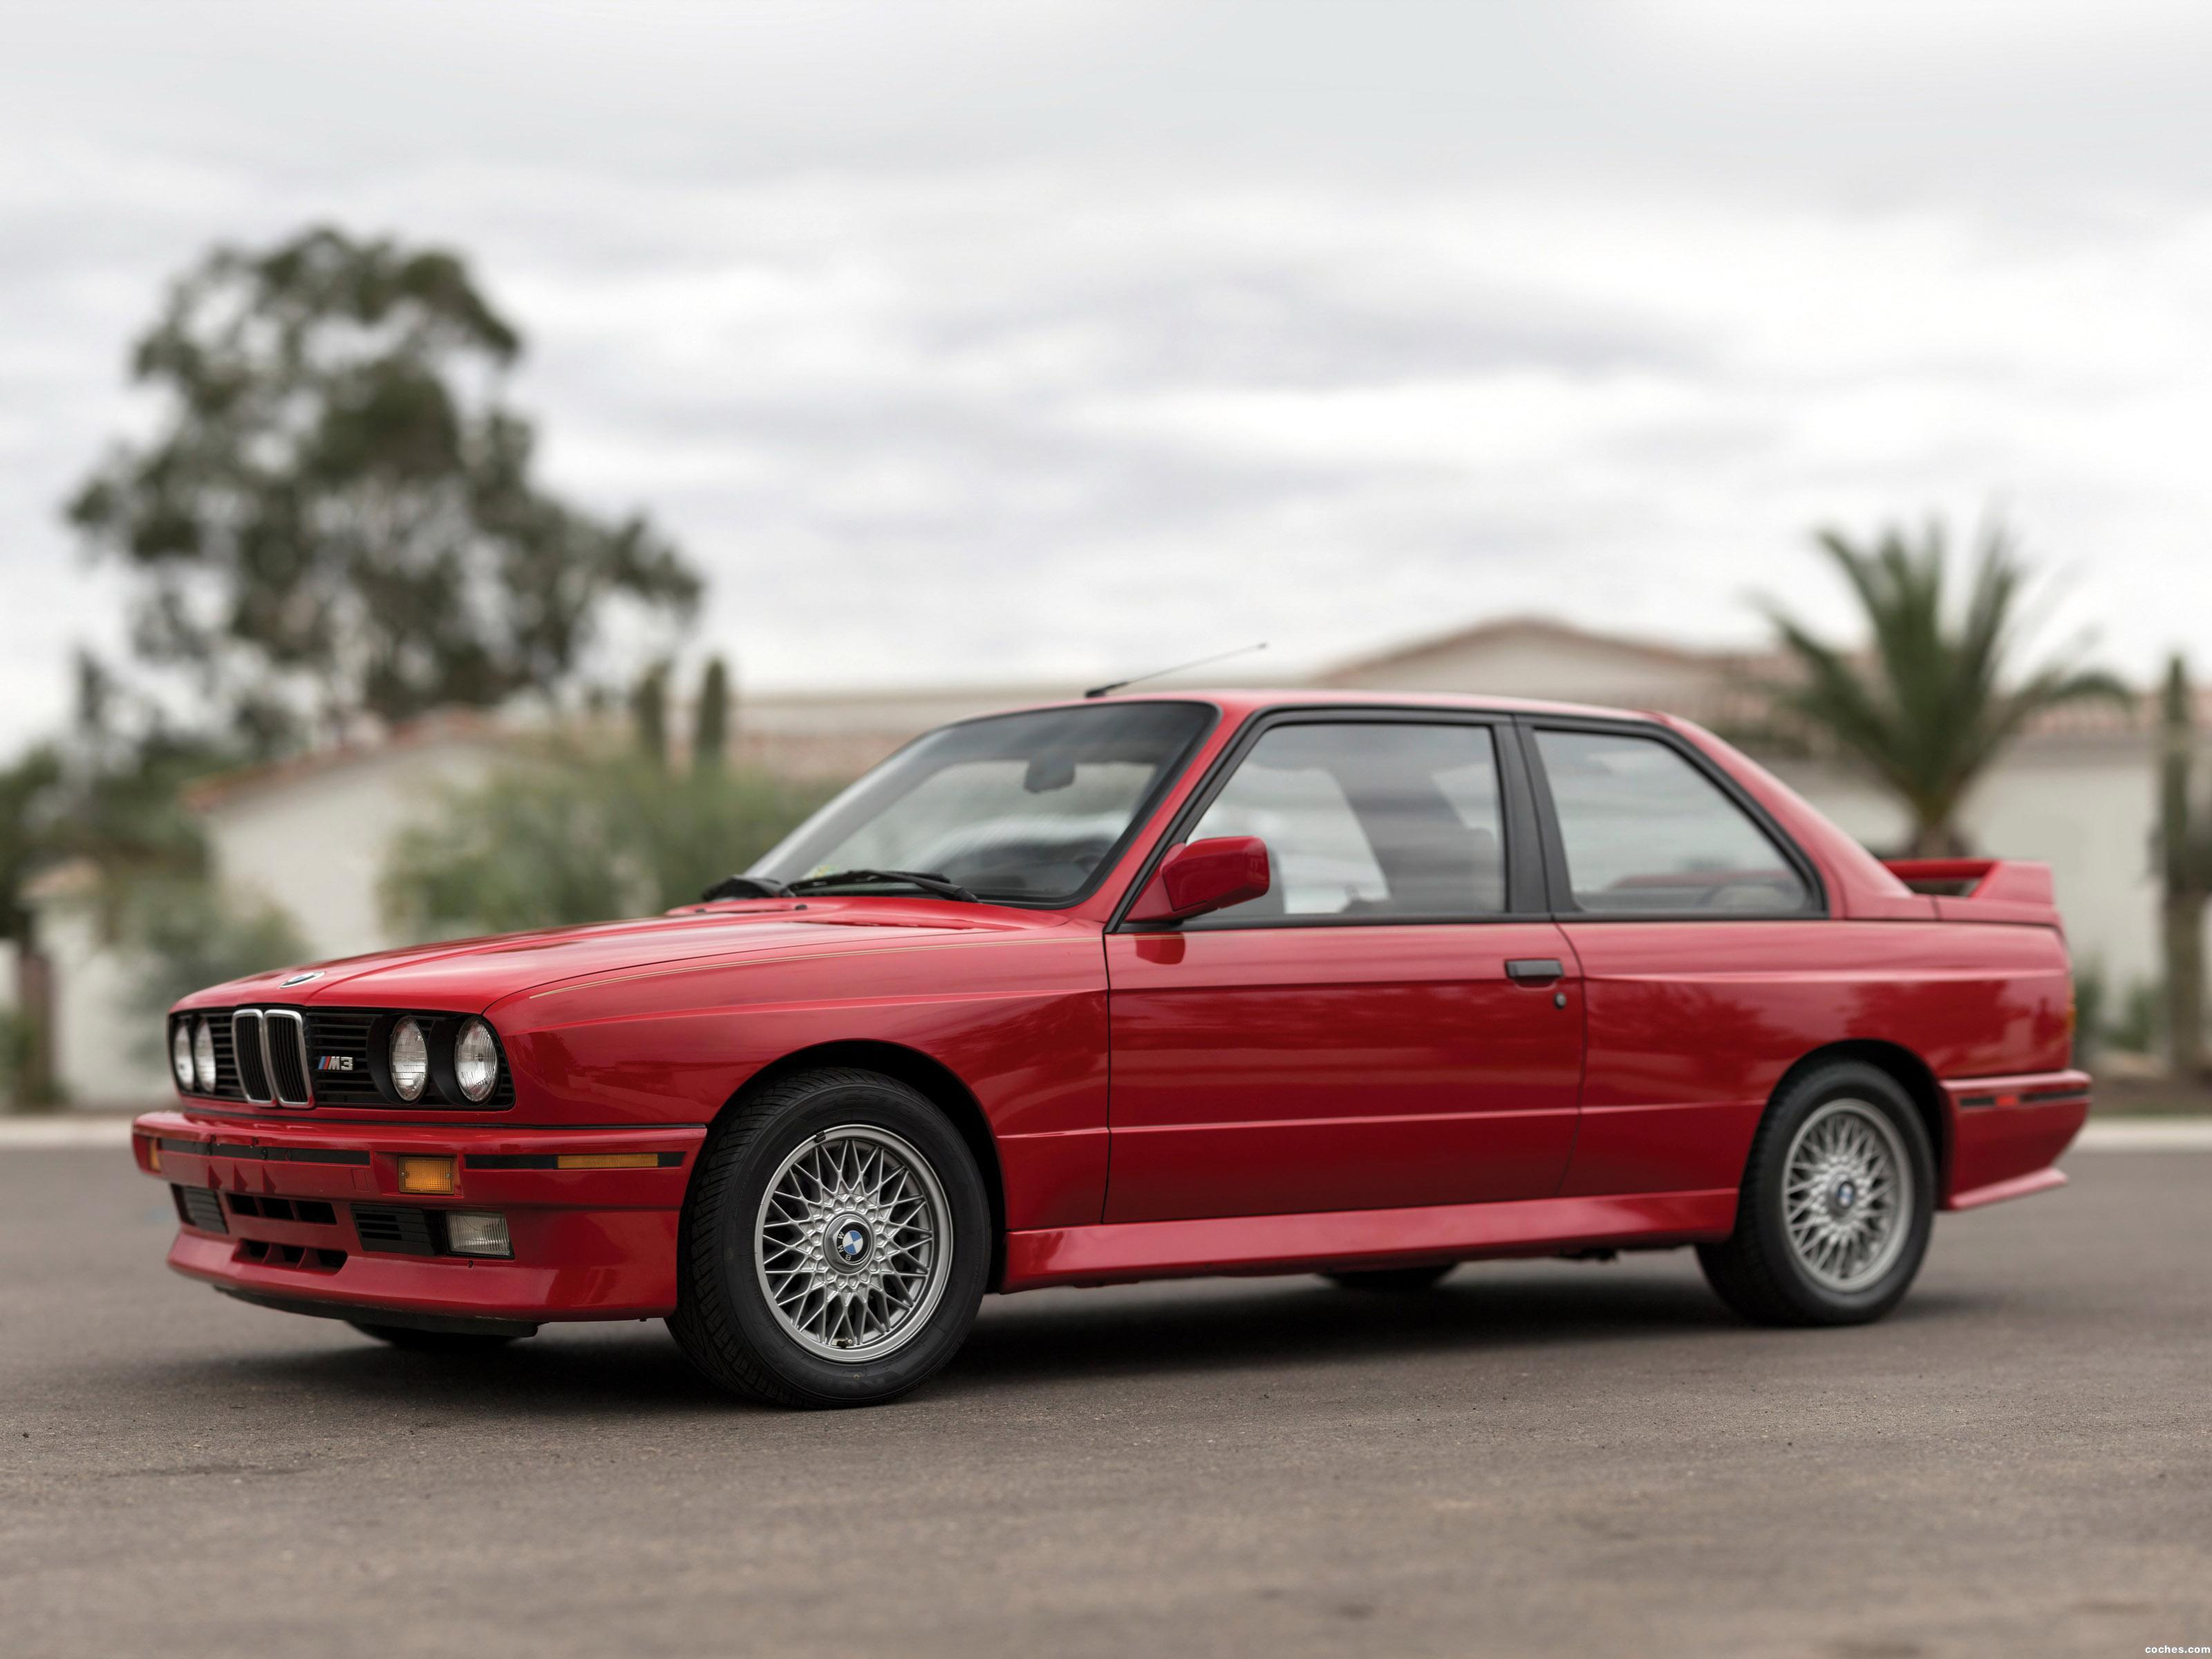 bmw_m3-coupe-e30-usa-1987-1990_r18.jpg